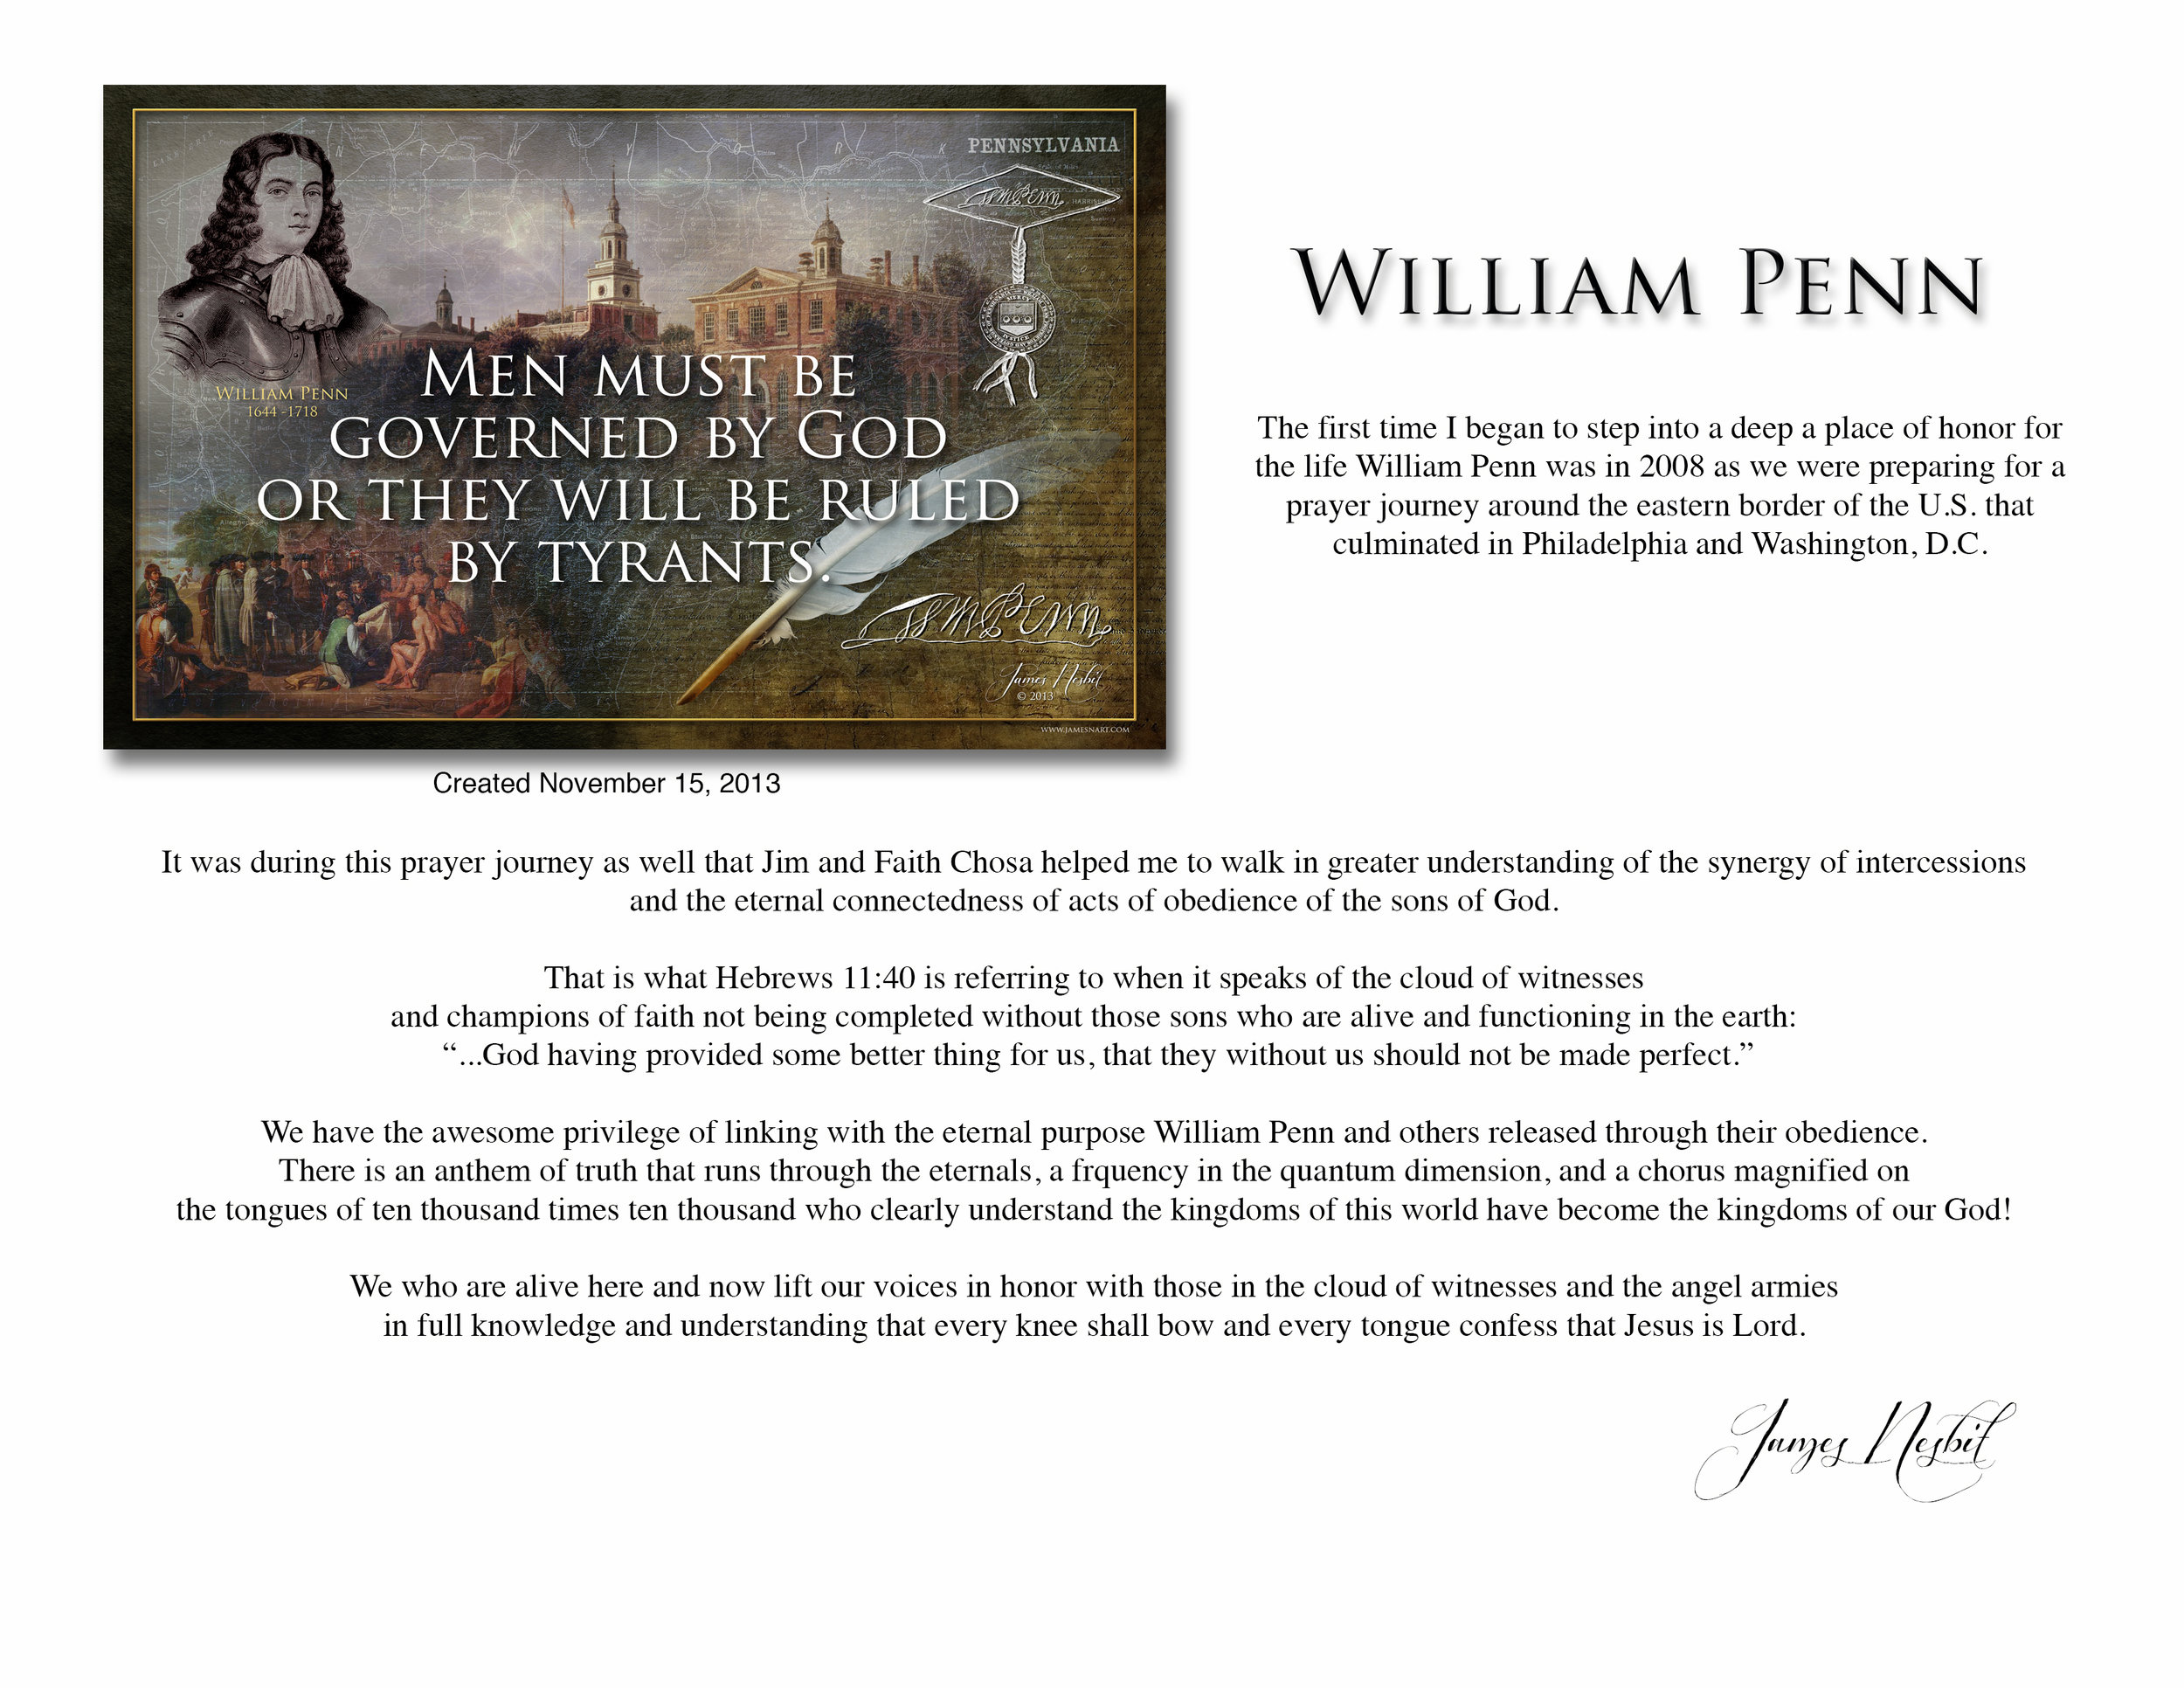 William Penn Description .jpg